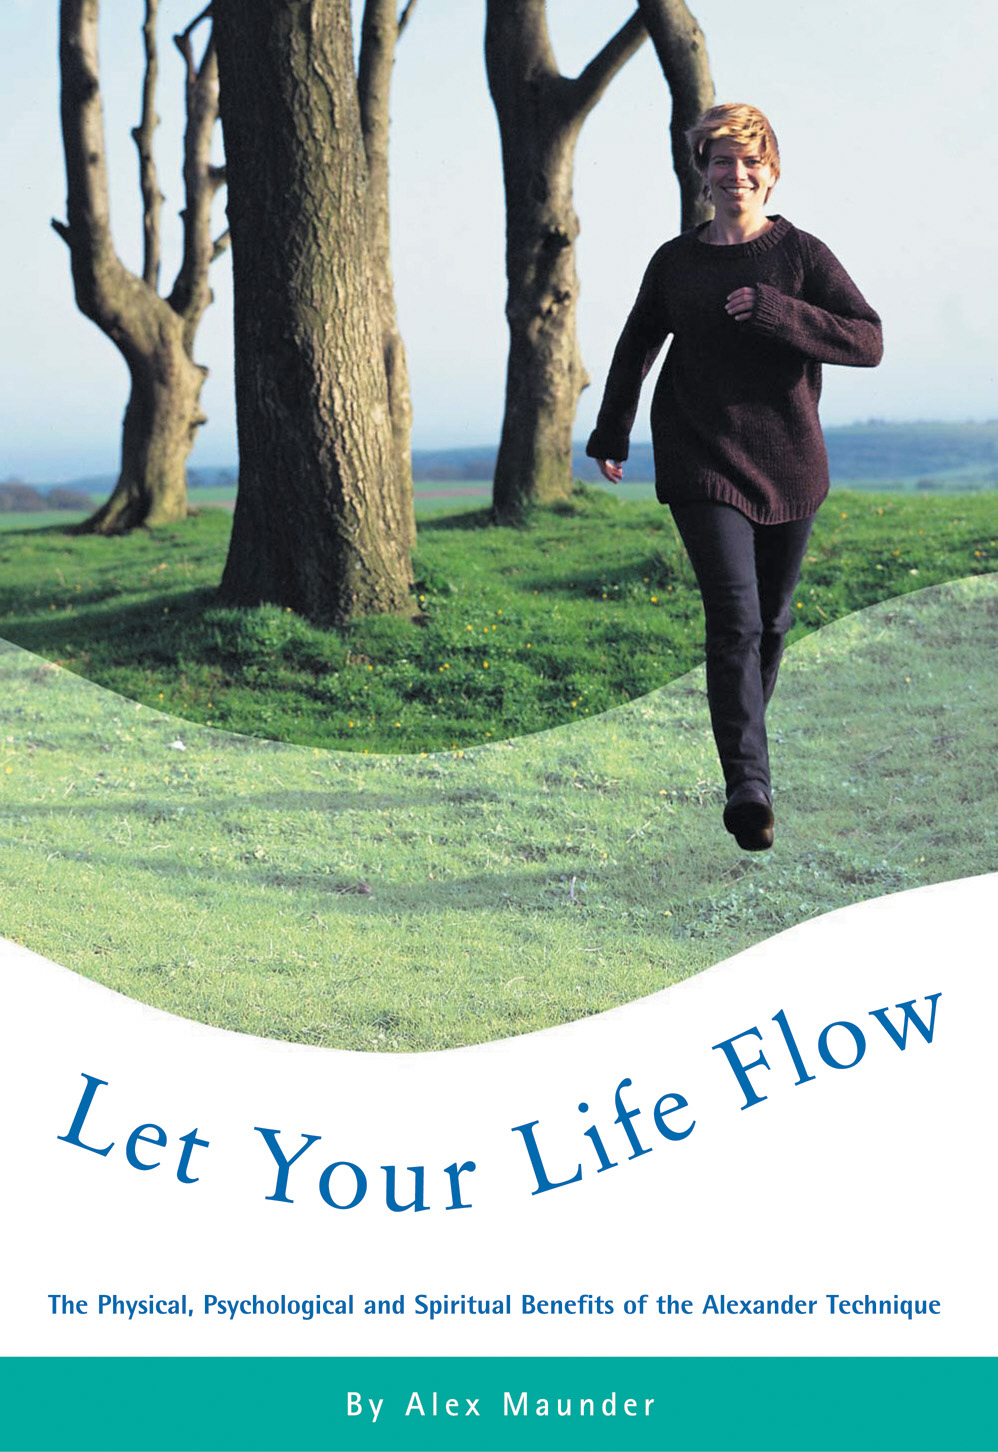 Let Your Life Flow The Physical,  Psychological and Spiritual Benefits of the Alexander Technique